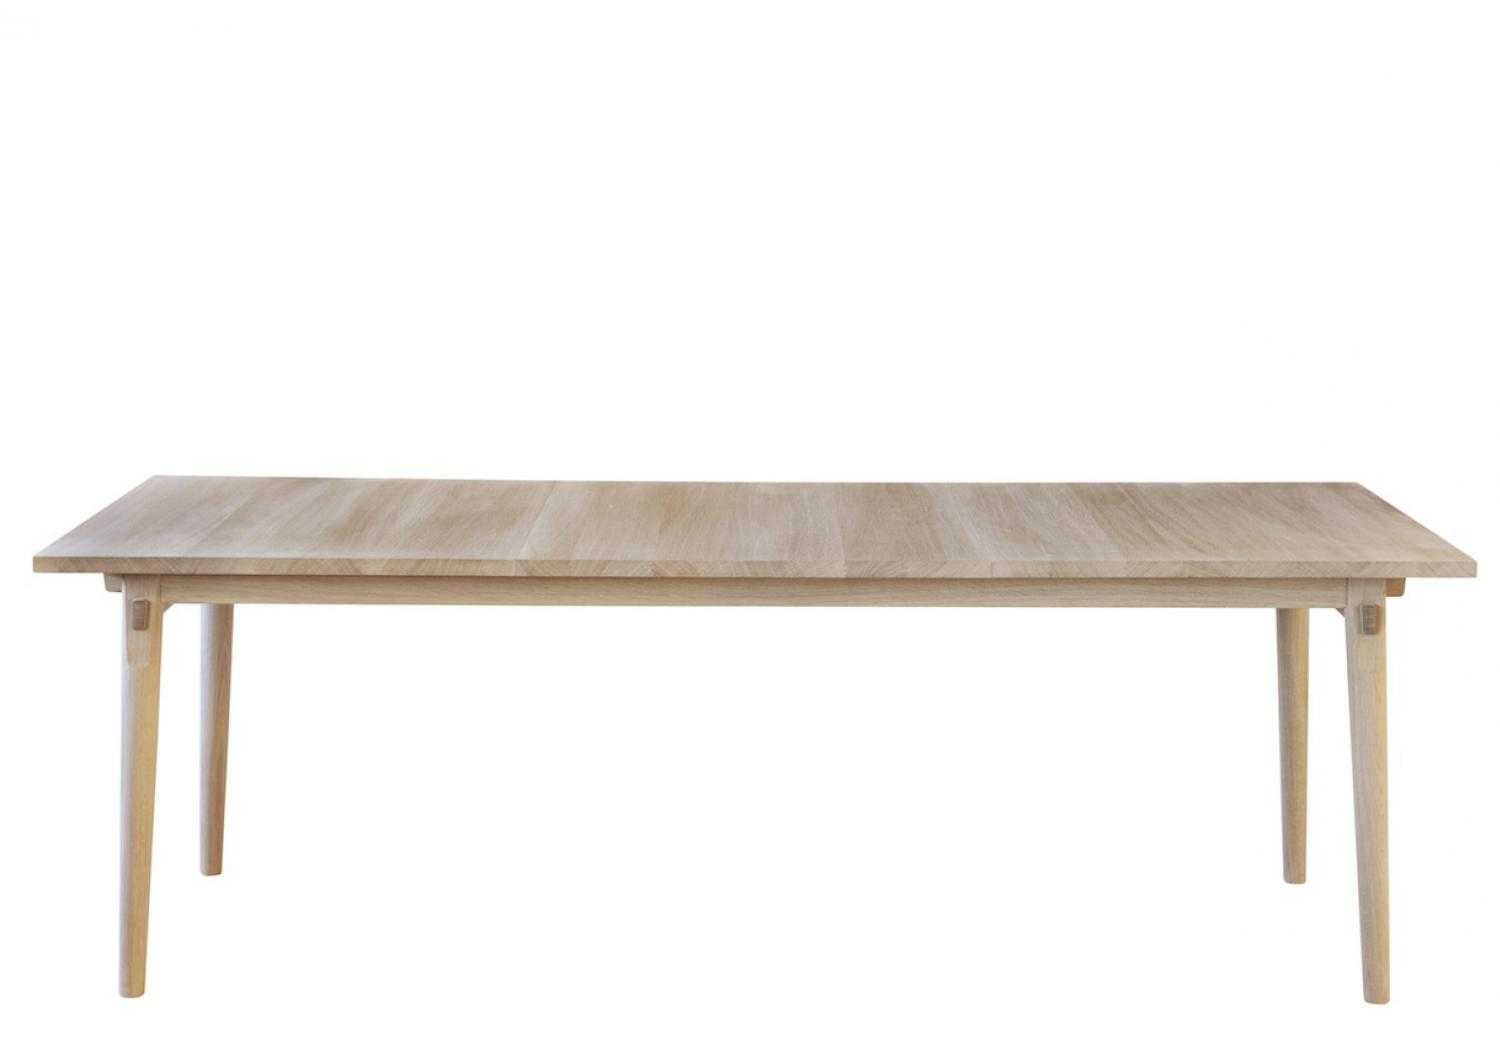 pp850 extendable table from PP Møbler -  in oak, 222 cm to 366 cm